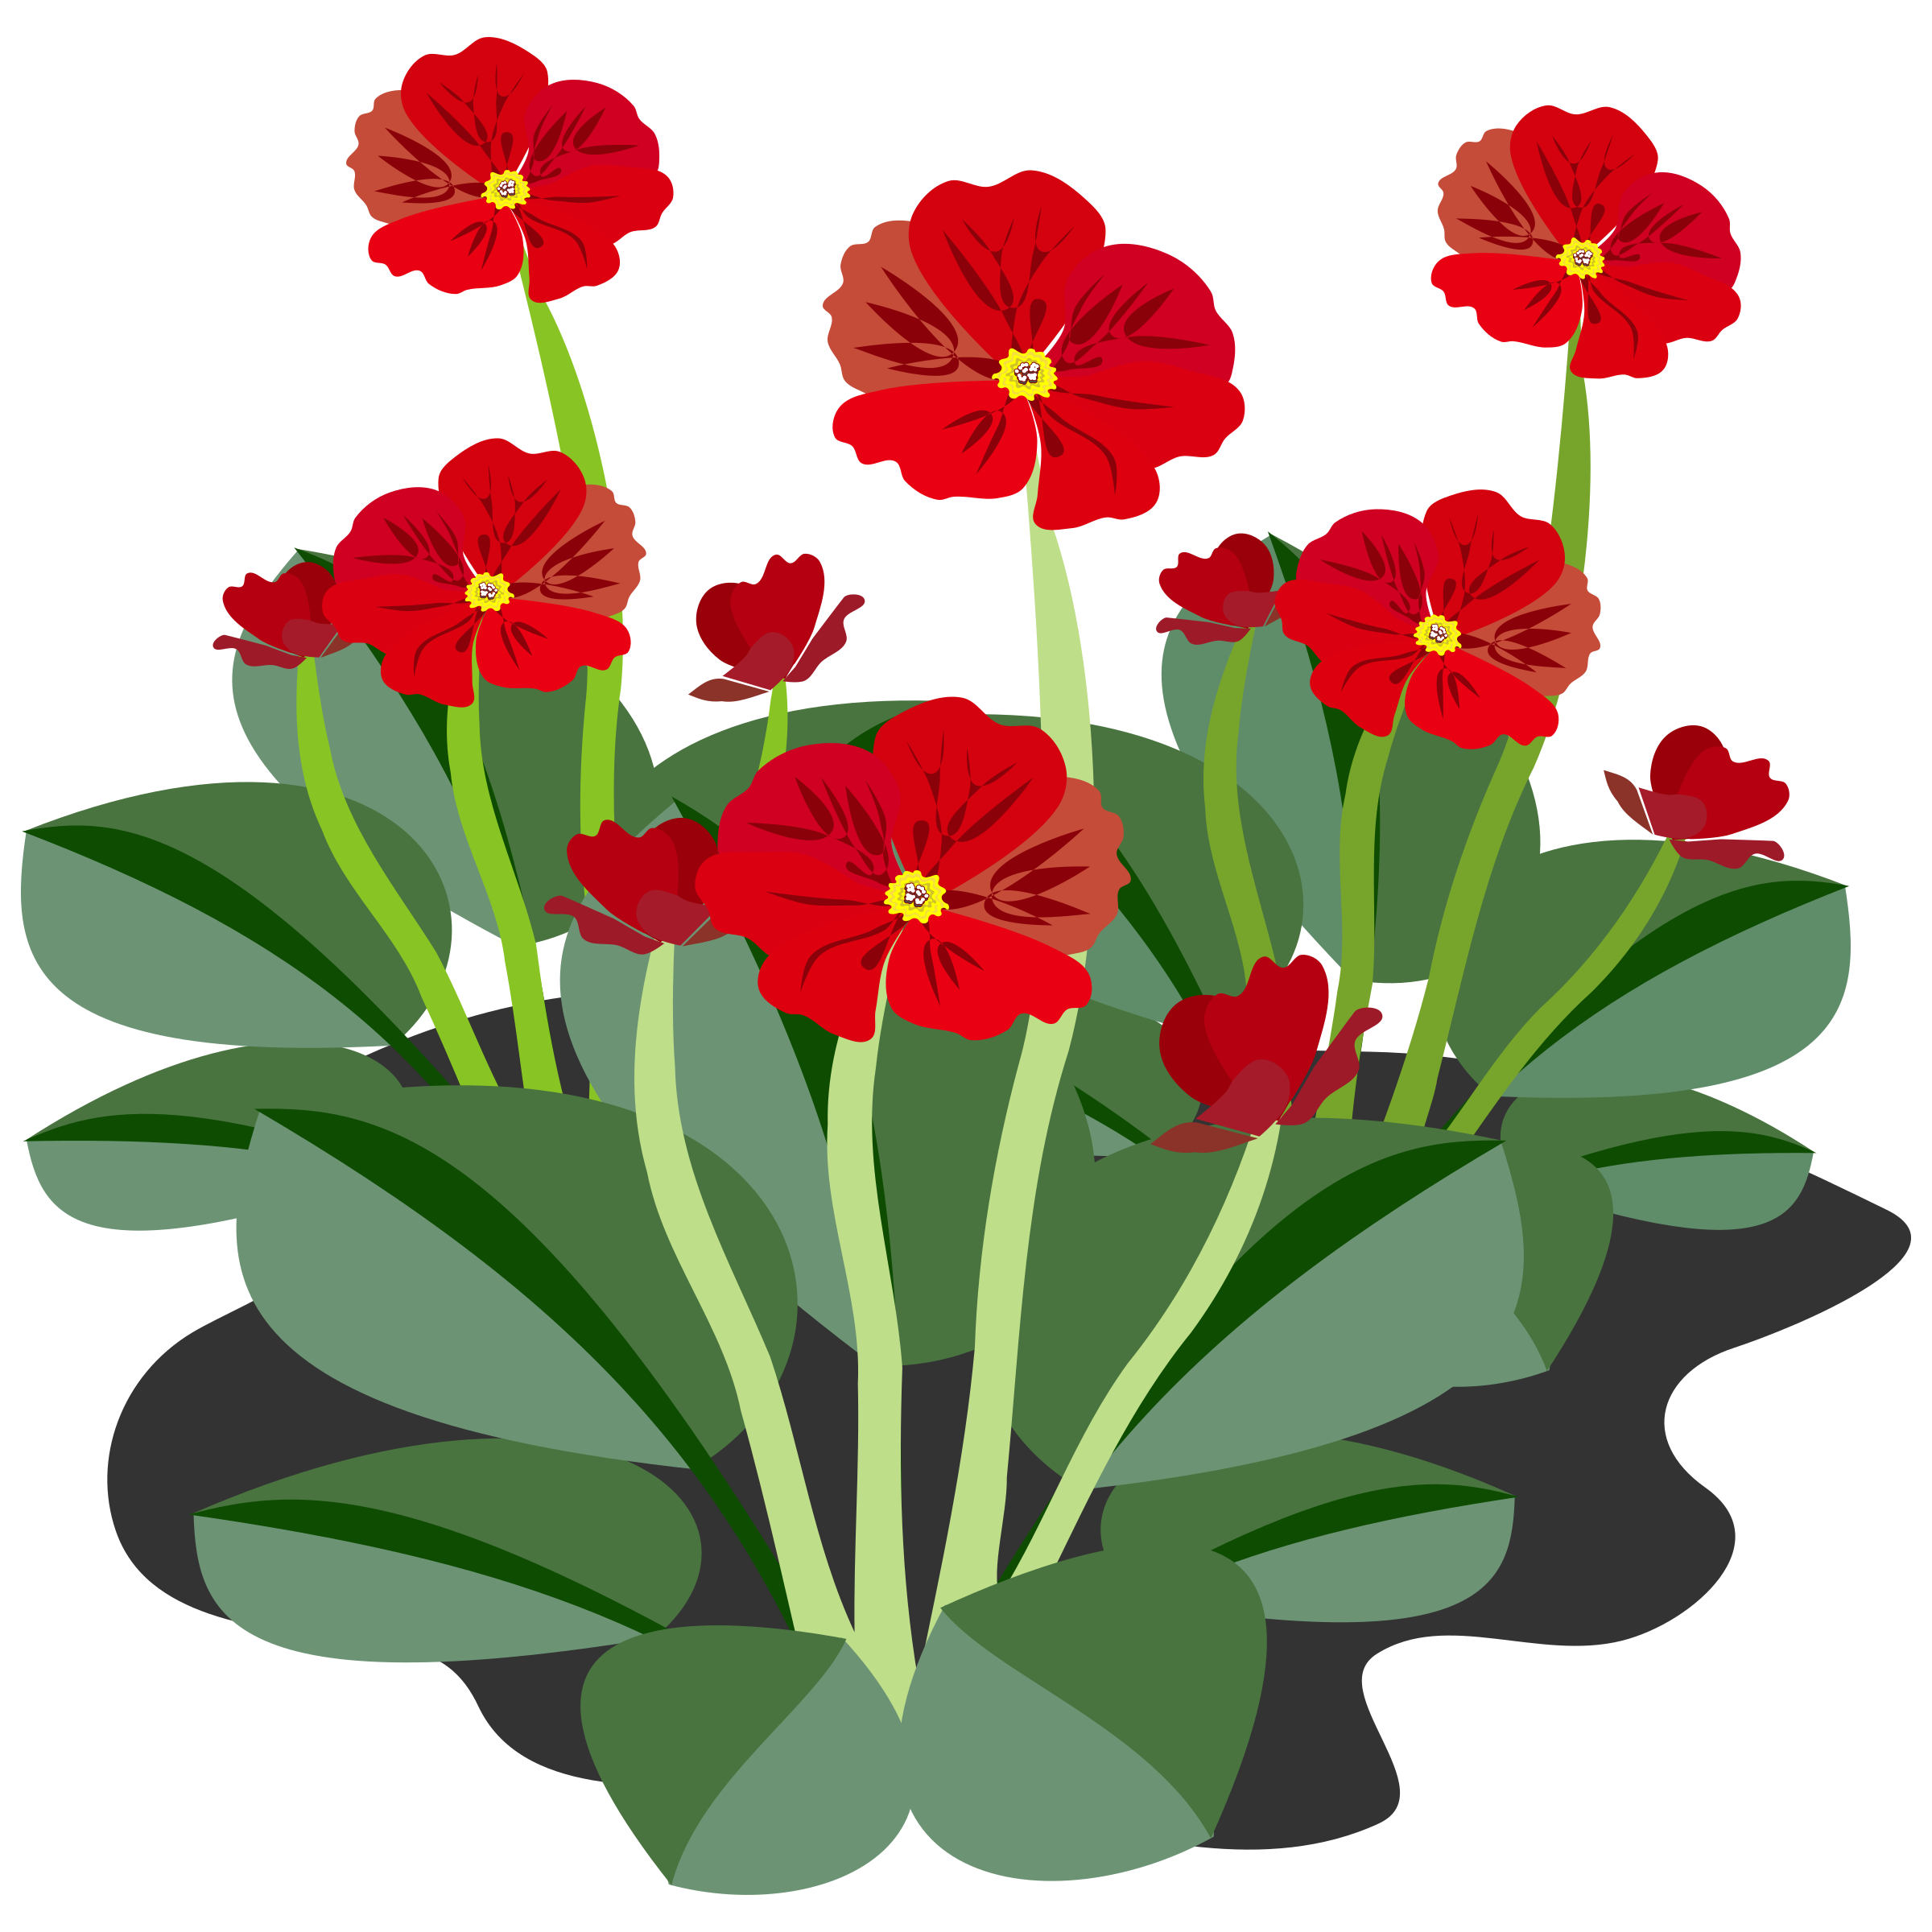 Flower seeds clipart banner free stock Clipart - Flower banner free stock